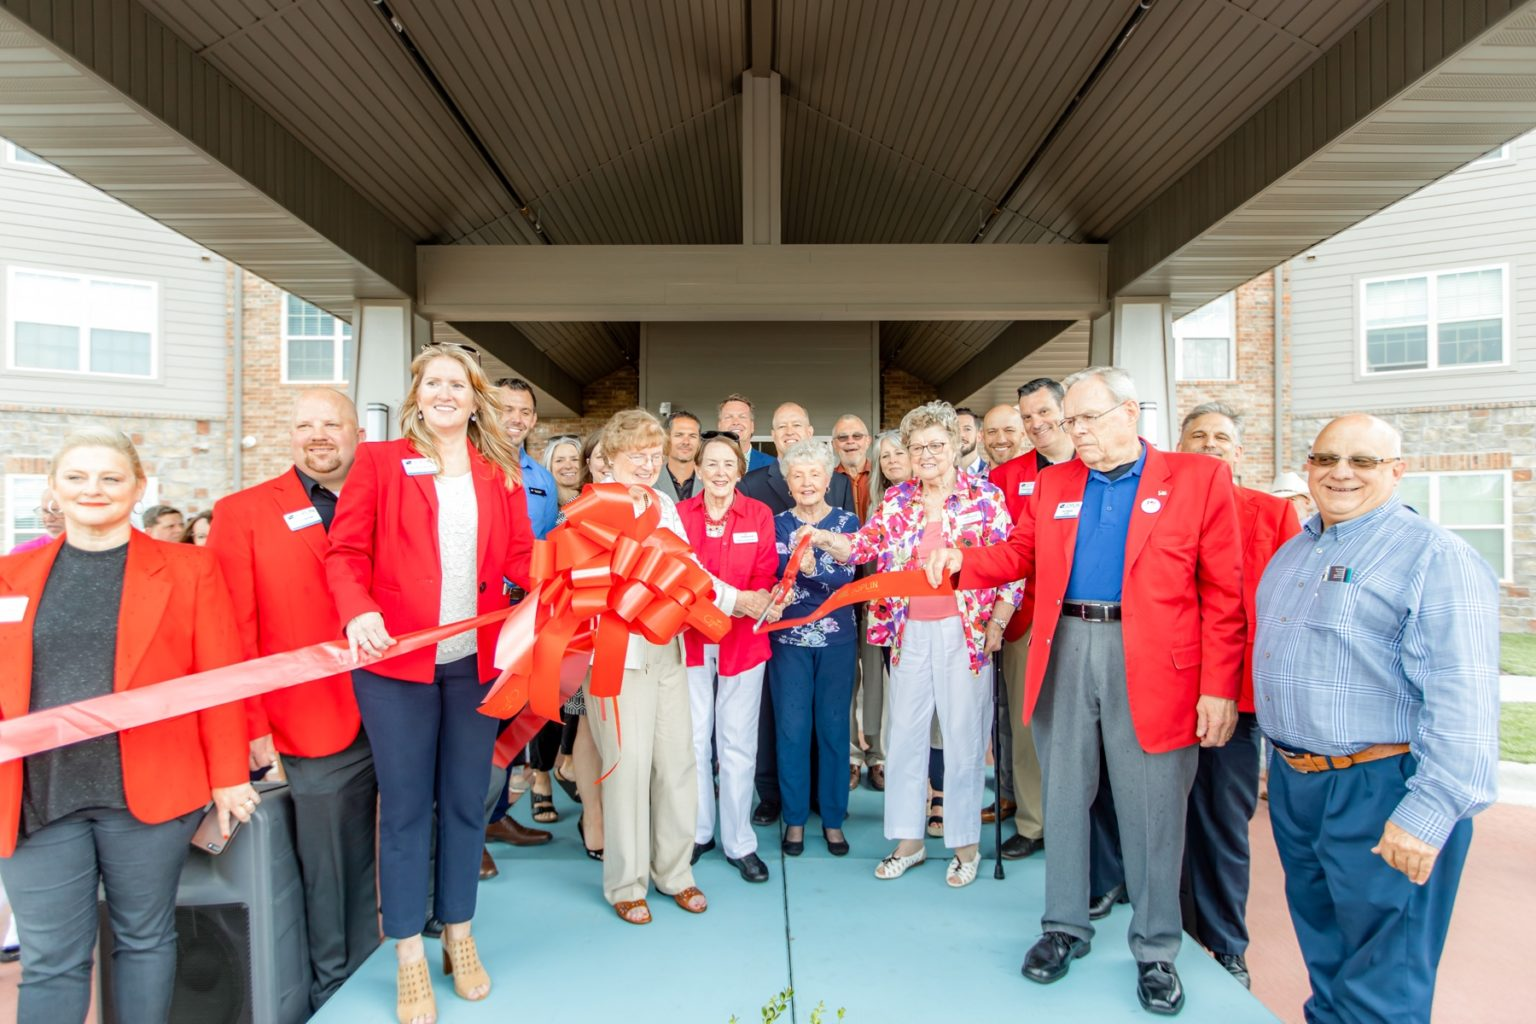 The Wildwood Senior Living Grand Opening & Ribbon Cutting